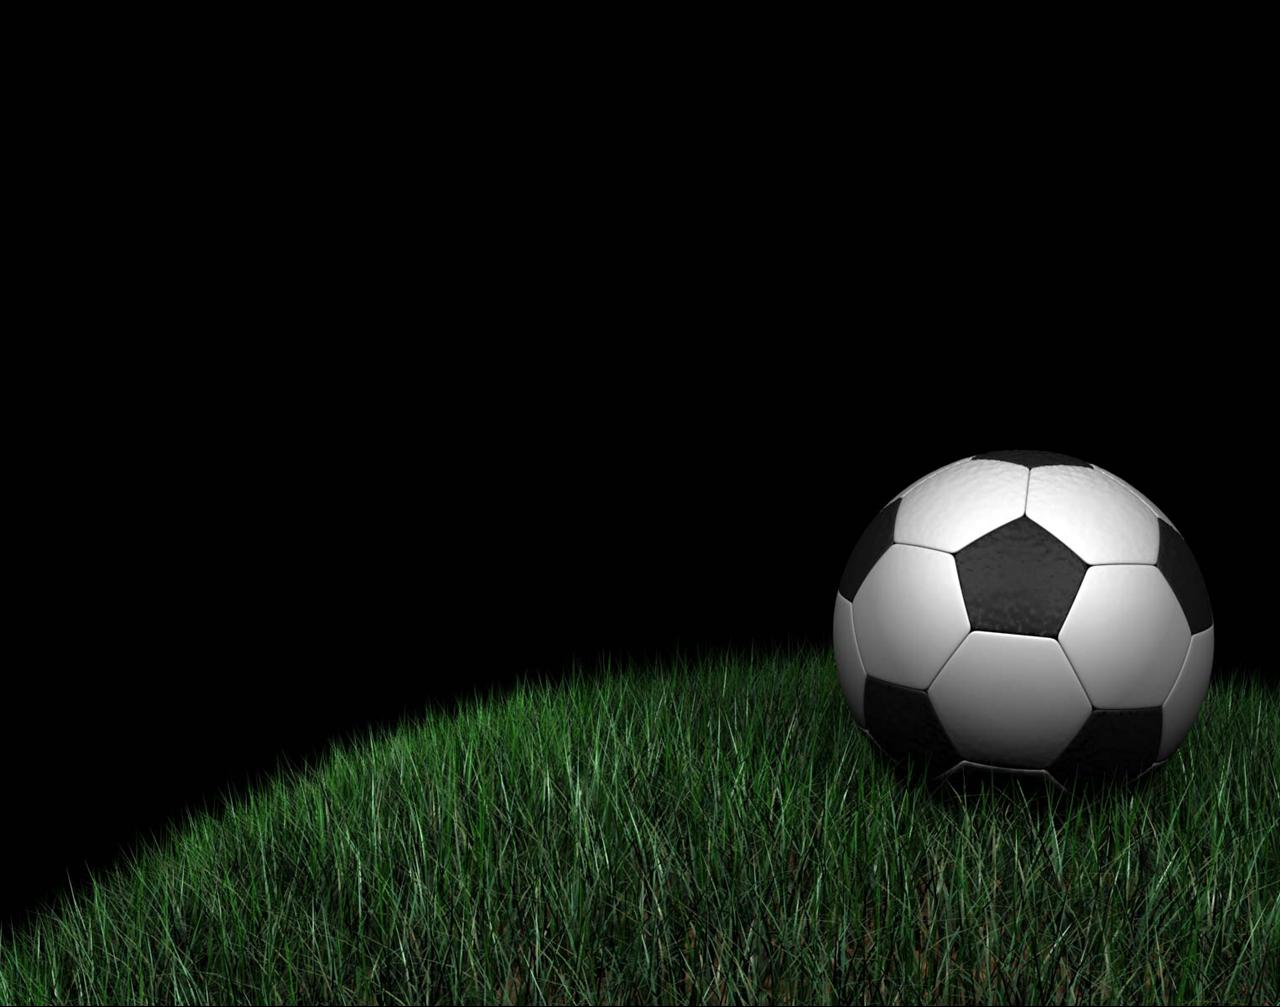 Free Download Soccer Backgrounds Wallpaper Soccer Backgrounds Hd Wallpaper 1280x1007 For Your Desktop Mobile Tablet Explore 74 Soccer Wallpapers Brazil Soccer Wallpaper Soccer Ball Wallpaper Cool Soccer Wallpaper